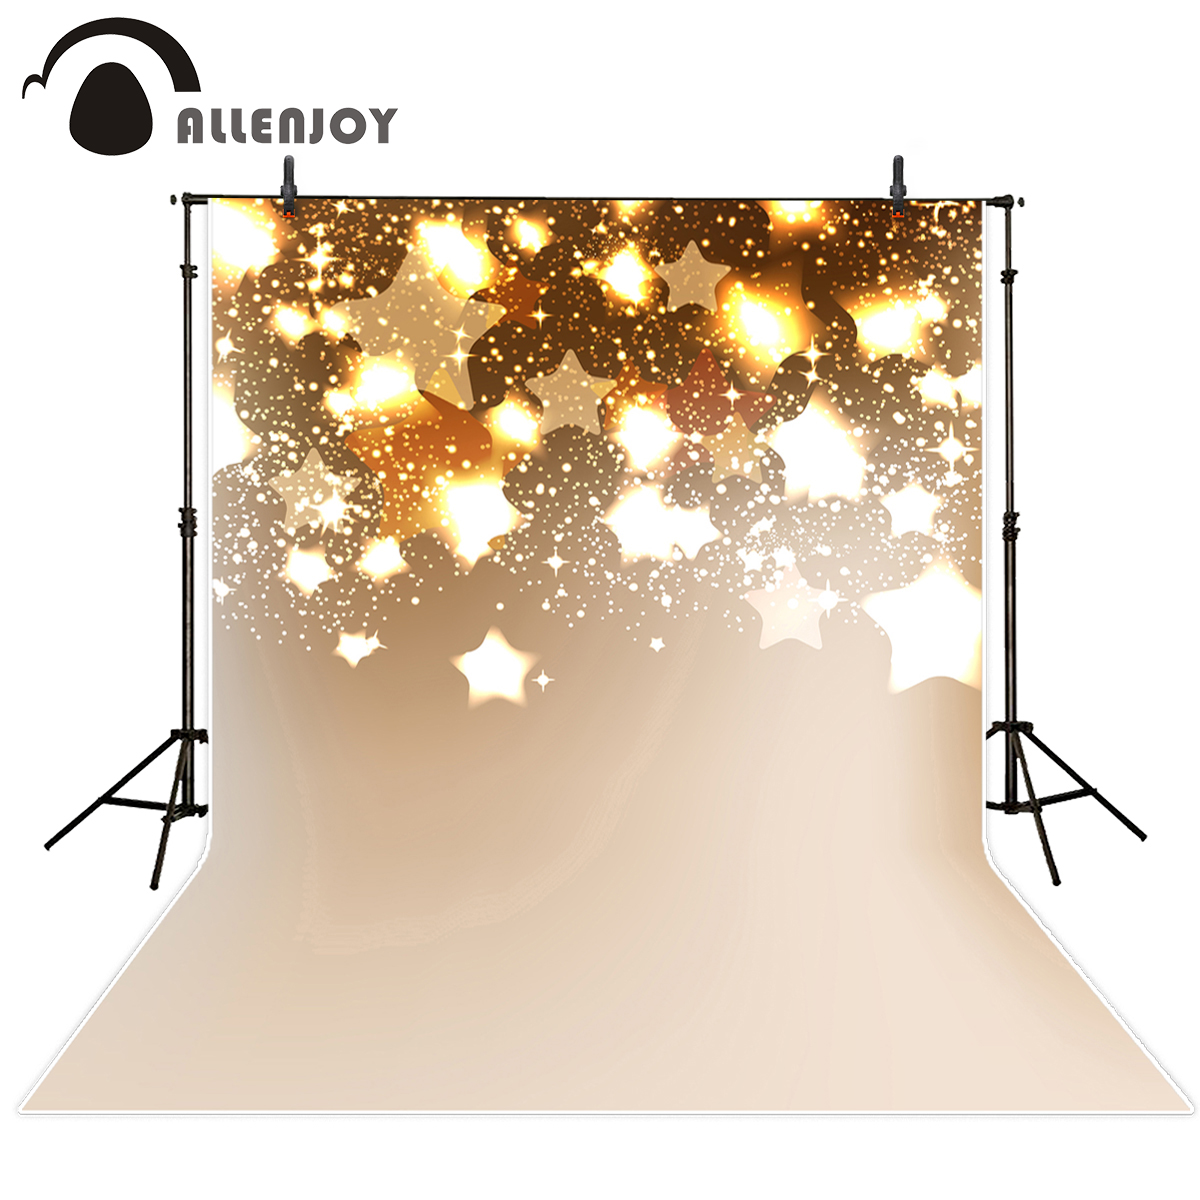 Allenjoy photography backdrops shiny golden star beautiful glitter backgrounds for photo studio photography background vinyl wall light 12w led wall lamp bedroom bedside living room hallway stairwell balcony aisle balcony lighting ac85 265v hz64